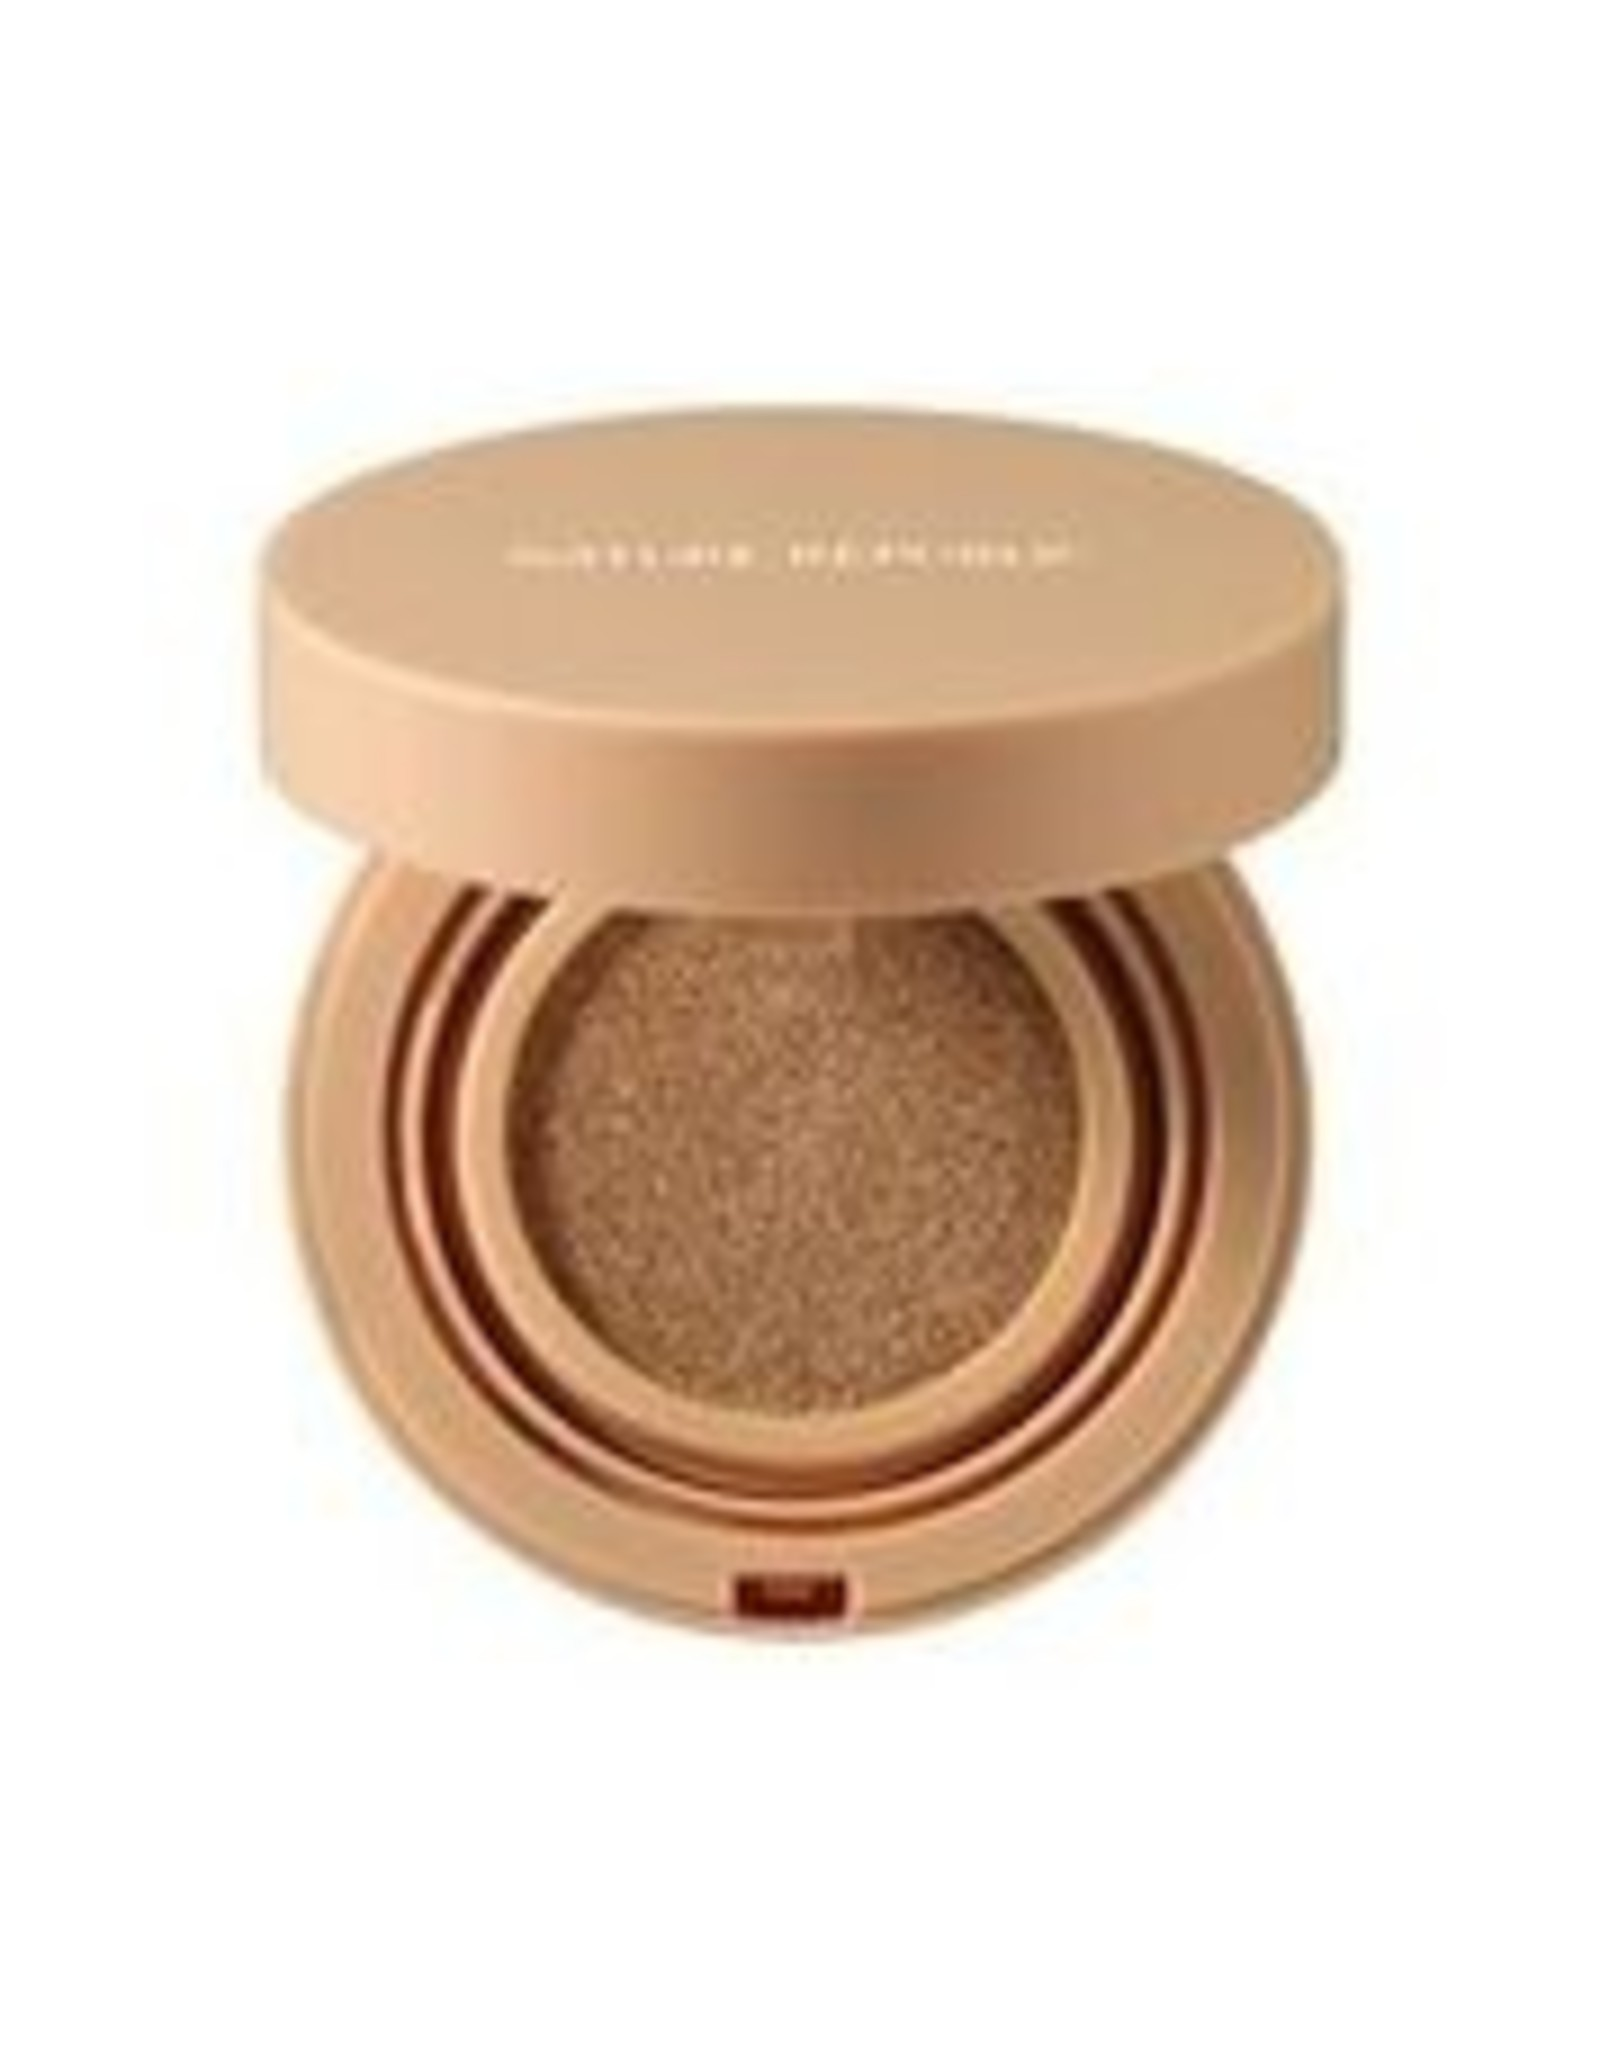 Provence Air Skin Fit One Day Lasting Foundation Cushion Y25 Golben Beige